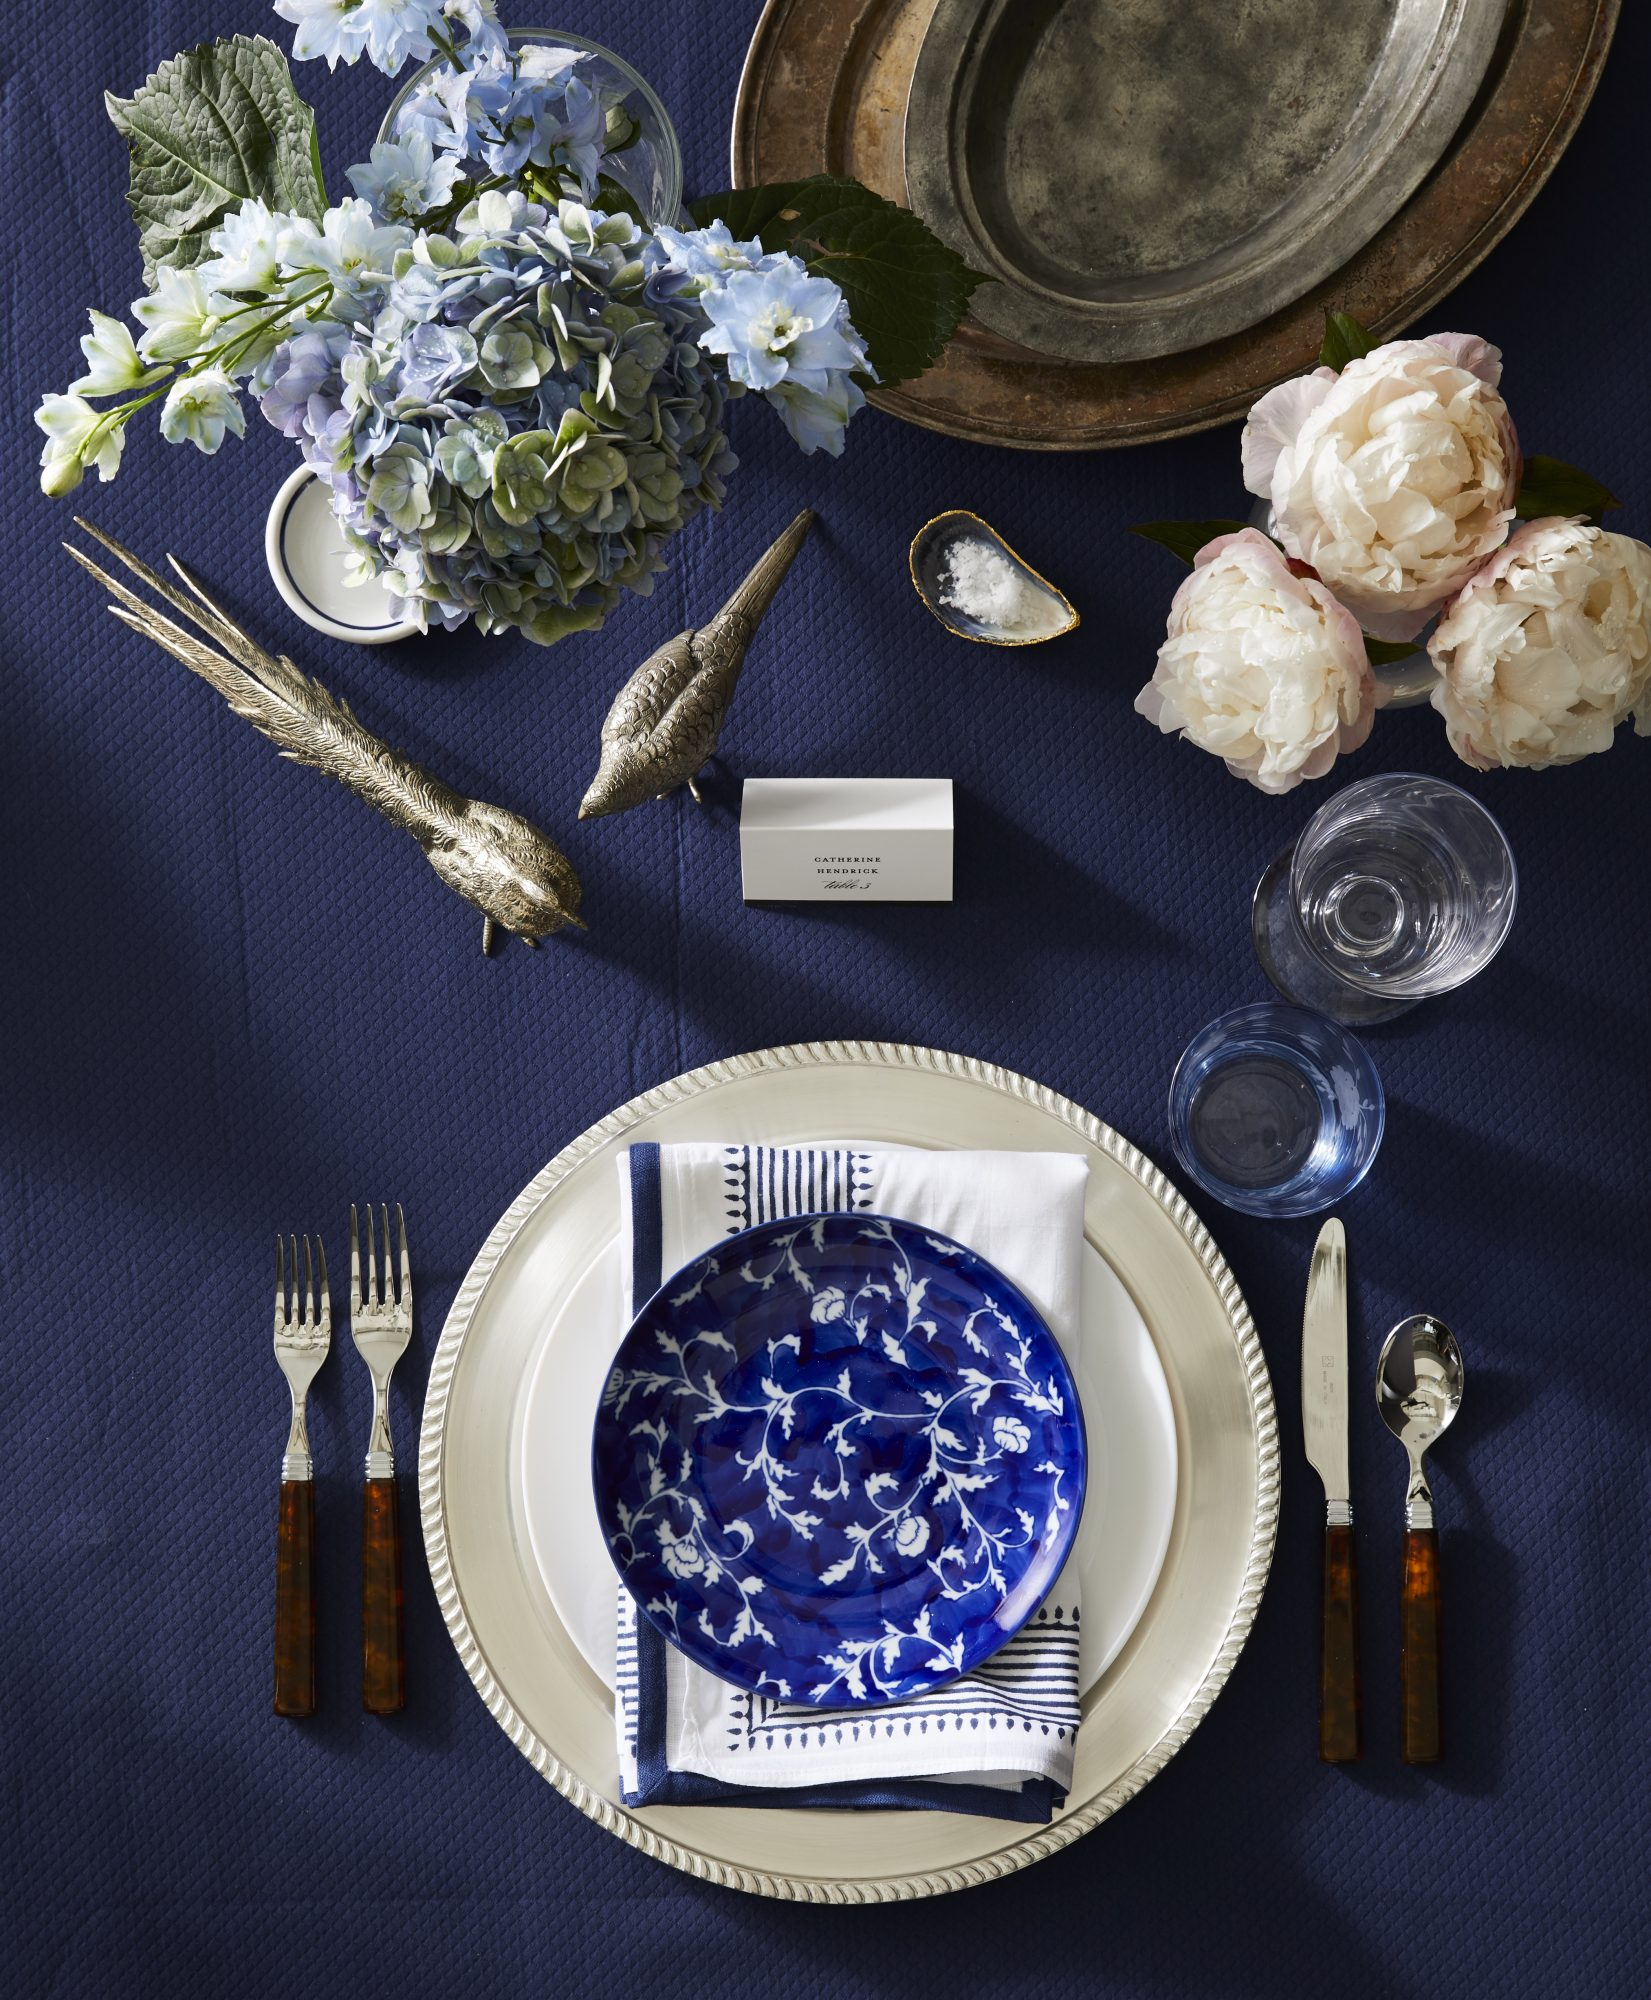 Classic Thanksgiving table with blue plate and silver accents